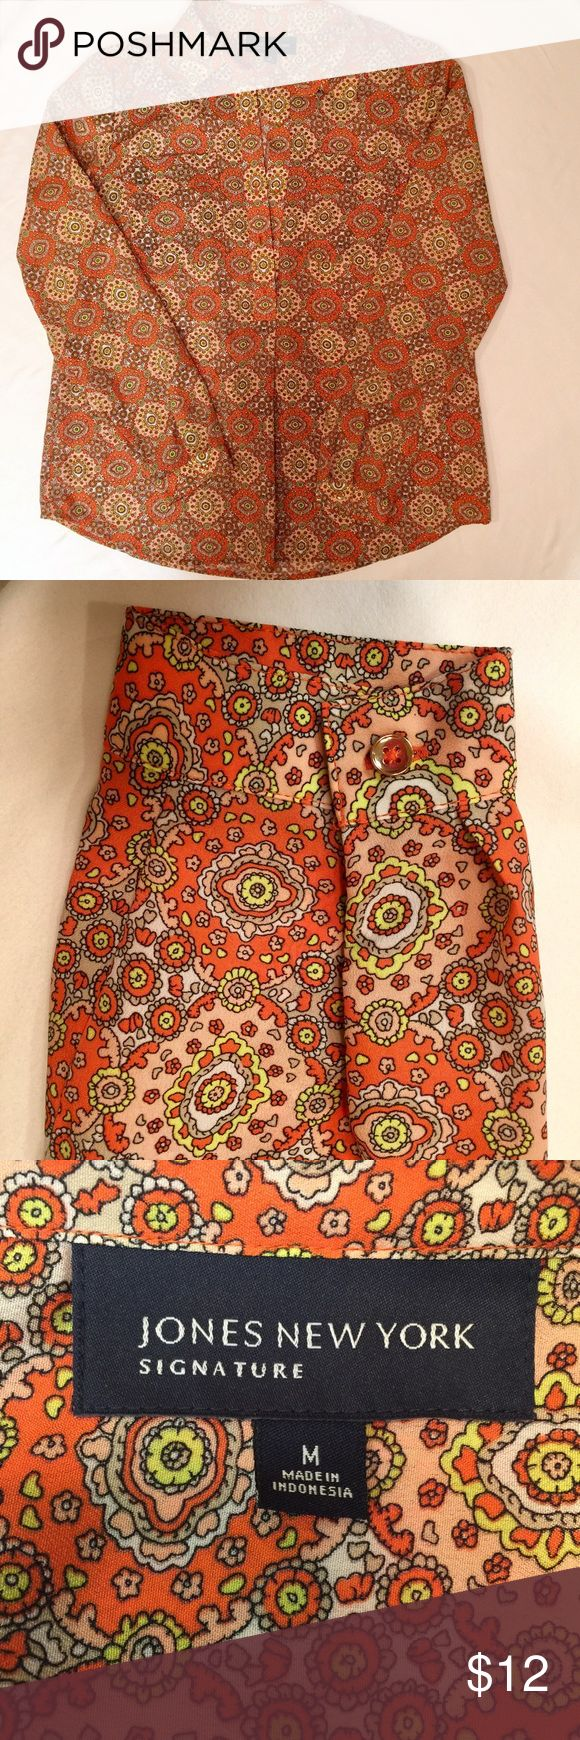 Jones NY orange print blouse Really striking print with orange and touches of blush and lime green. 2 breast pockets. Pleat under the front button placard, and pleat in back. Easy care machine wash/drip dry.  $9 from this sale will be donated to local homeless shelters. Jones New York Tops Blouses